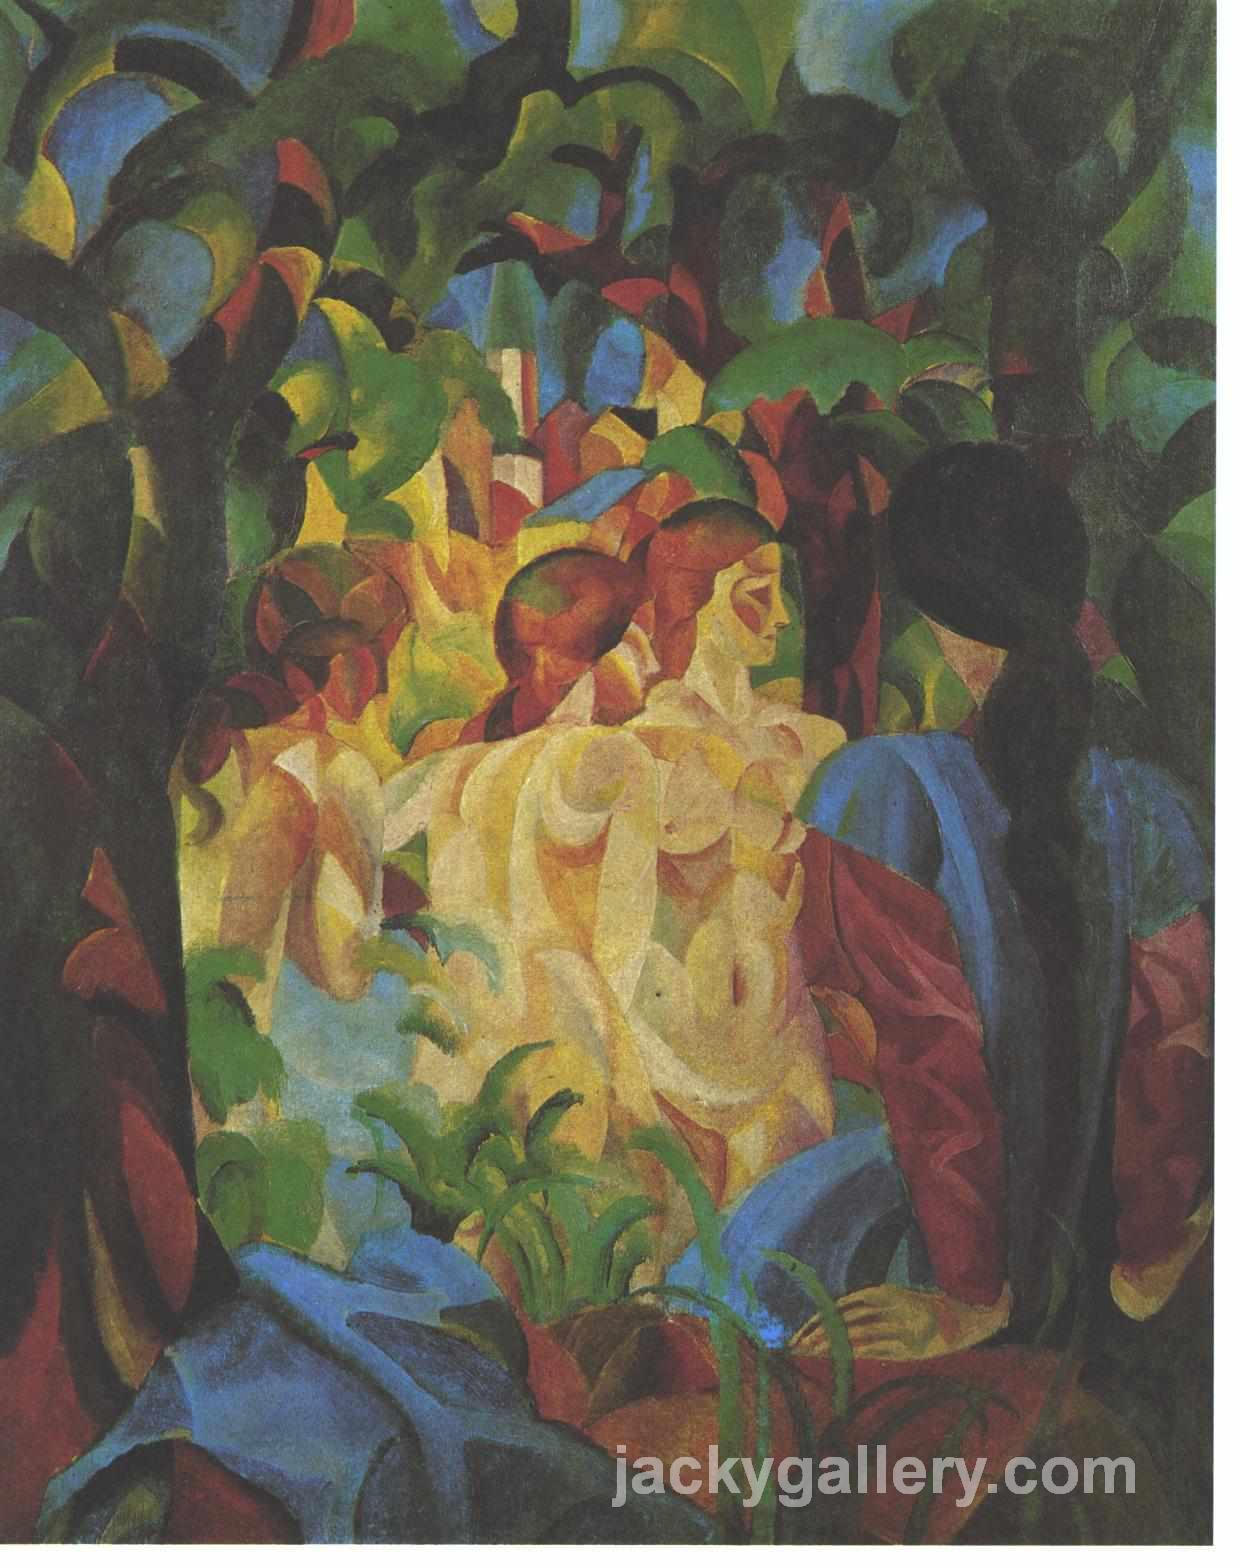 Bathing girls with town in the backgraund, August Macke painting